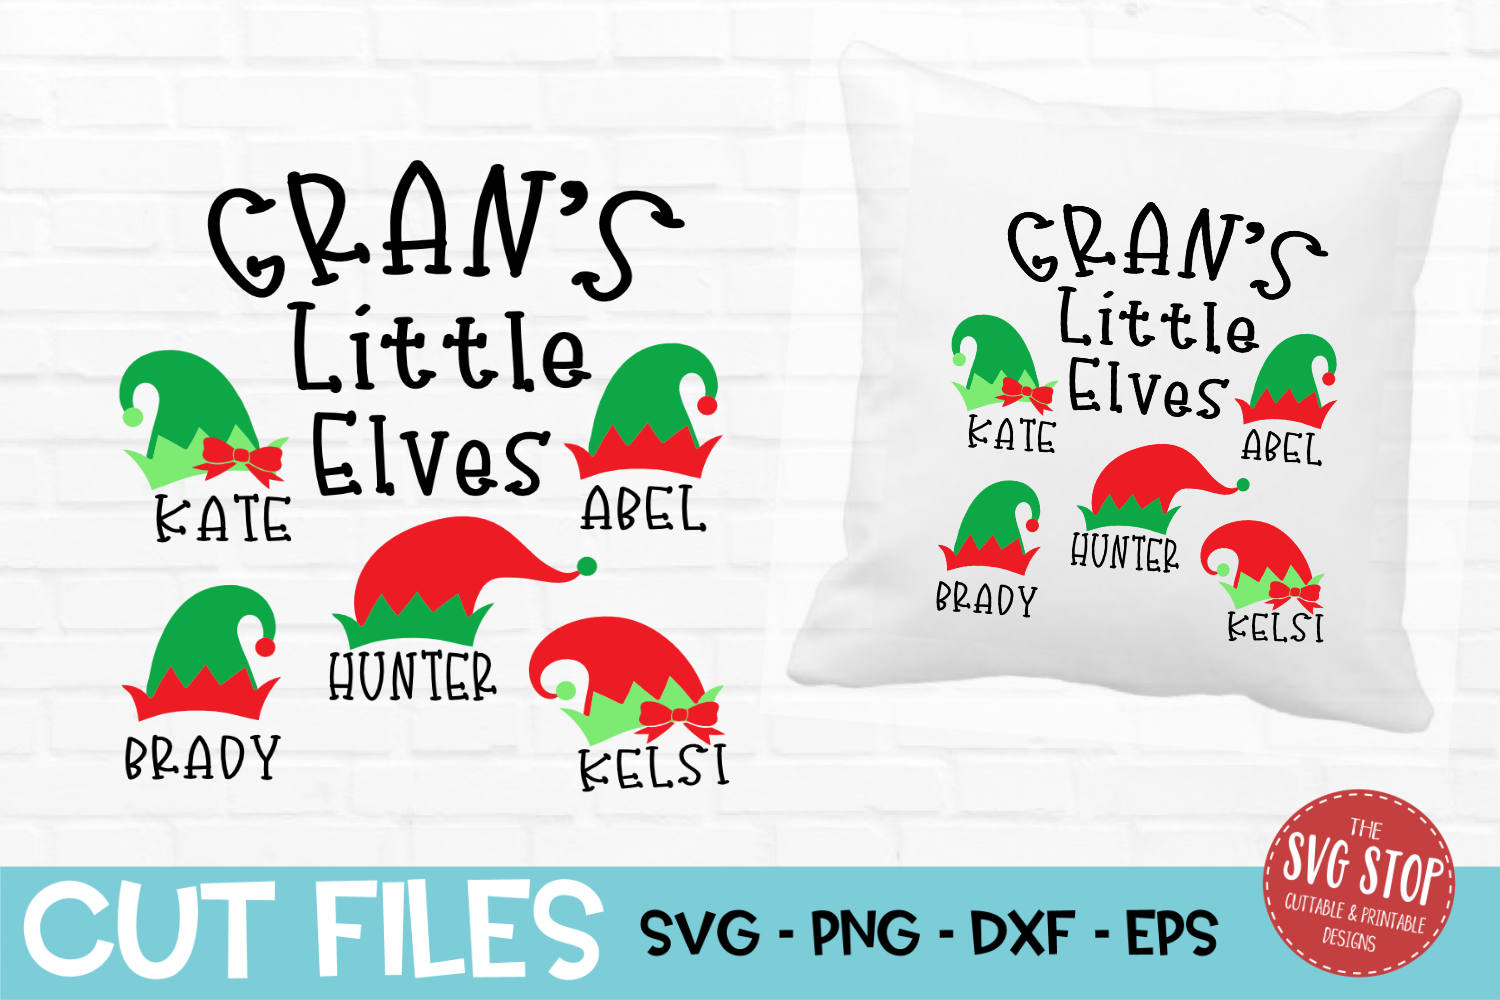 Grans Little Elves Christmas SVG, PNG, DXF, EPS example image 1